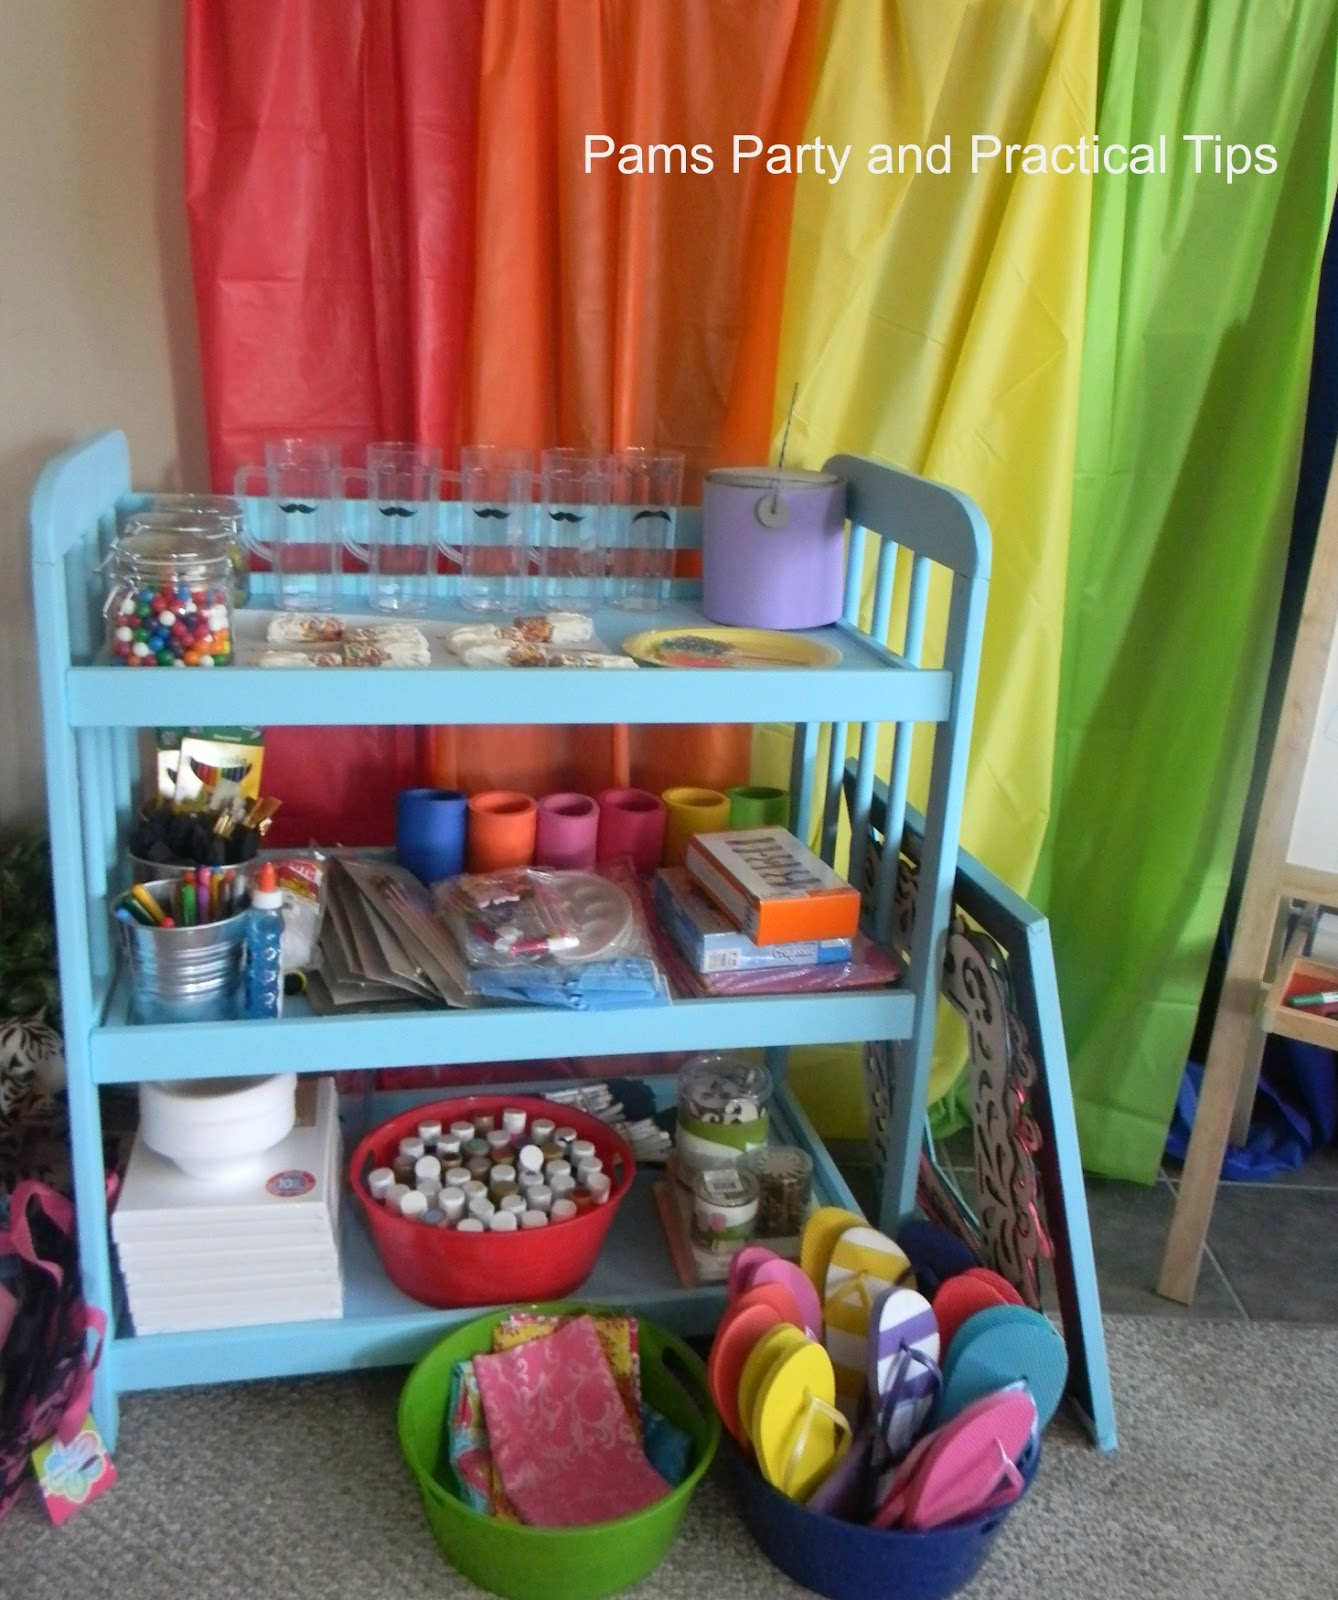 7 Top Tips For Throwing A Grand Party In A Small Home: Pams Party & Practical Tips: Changing Table To Party Table